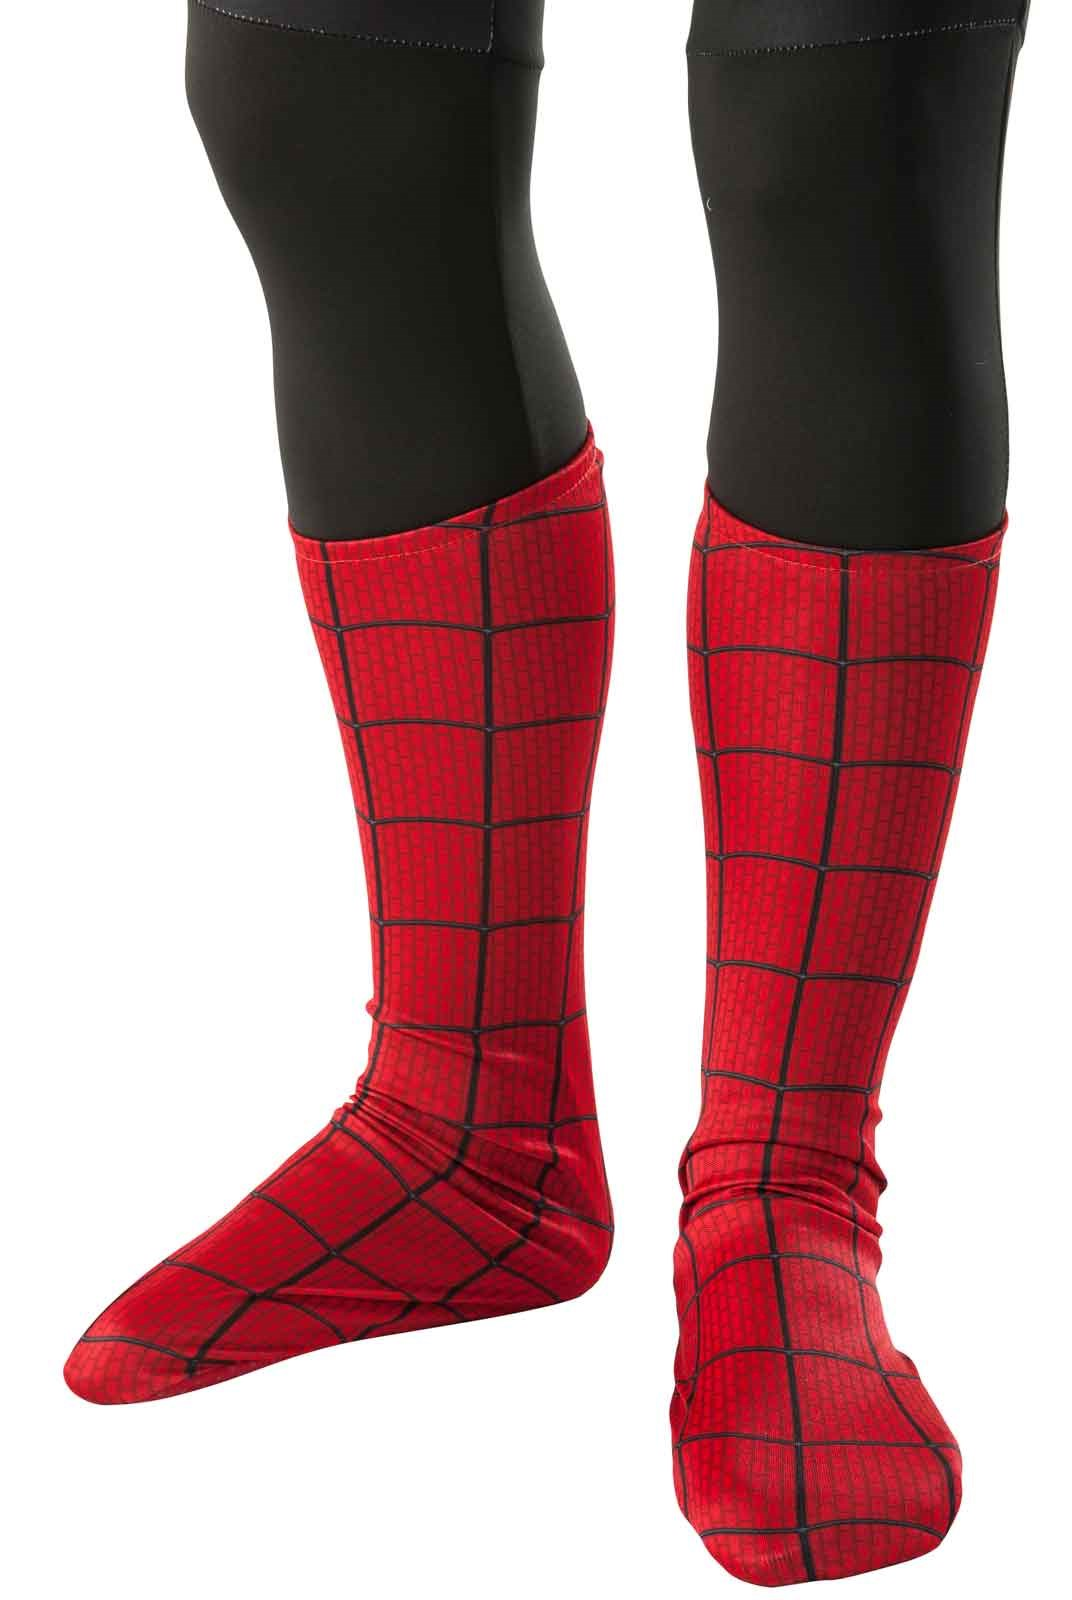 New Official The Amazing Spider-Man 2 Movie Kids Boot Covers Standard One-Size